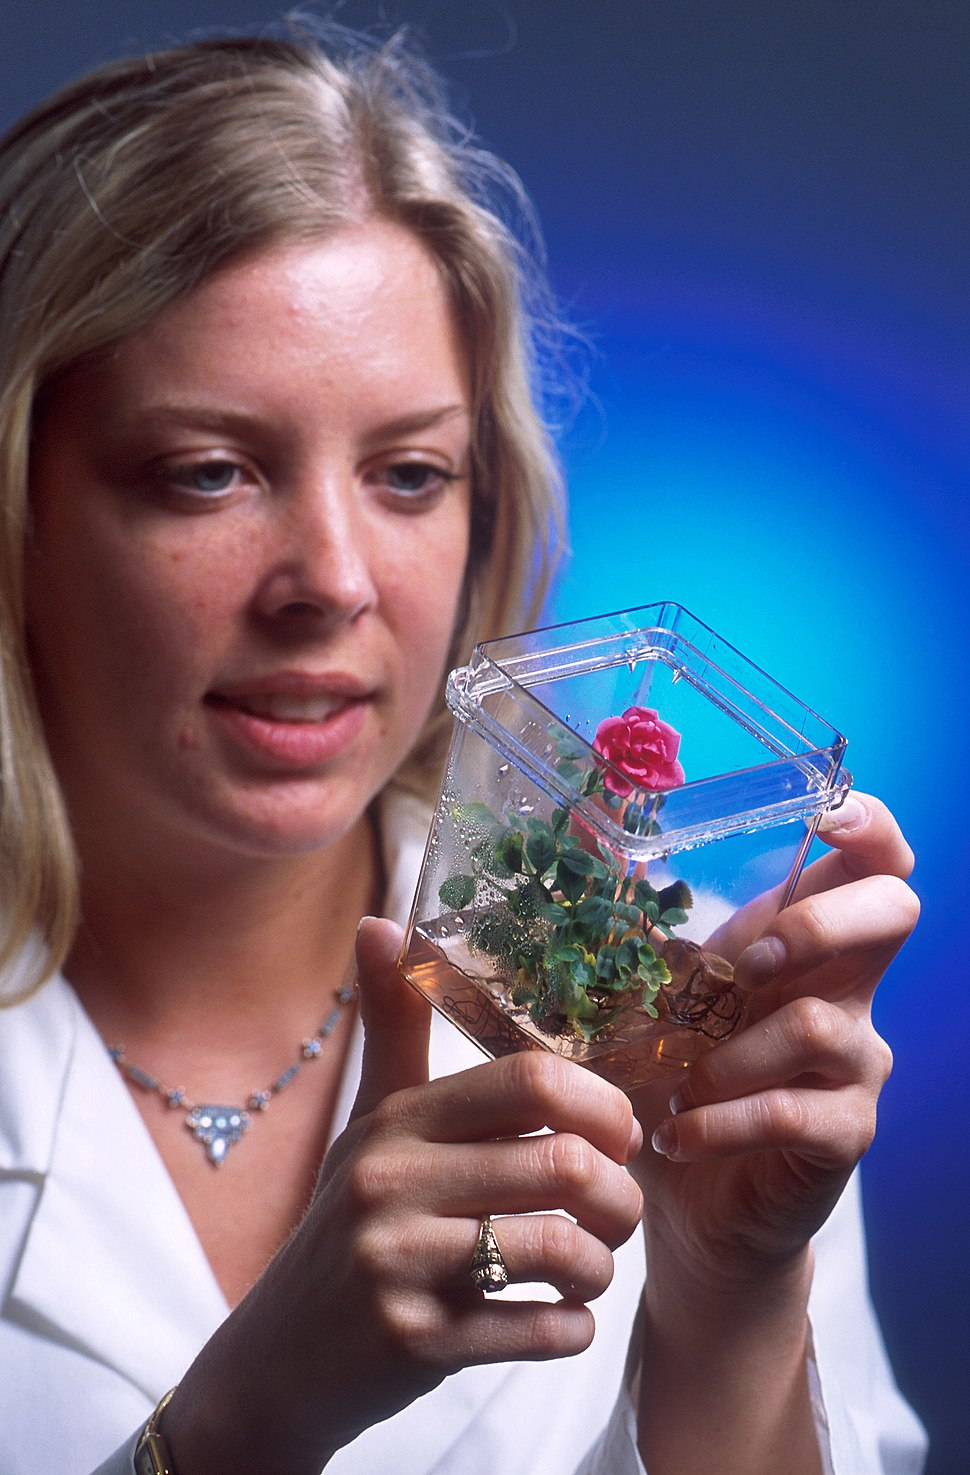 Rose grown from tissue culture